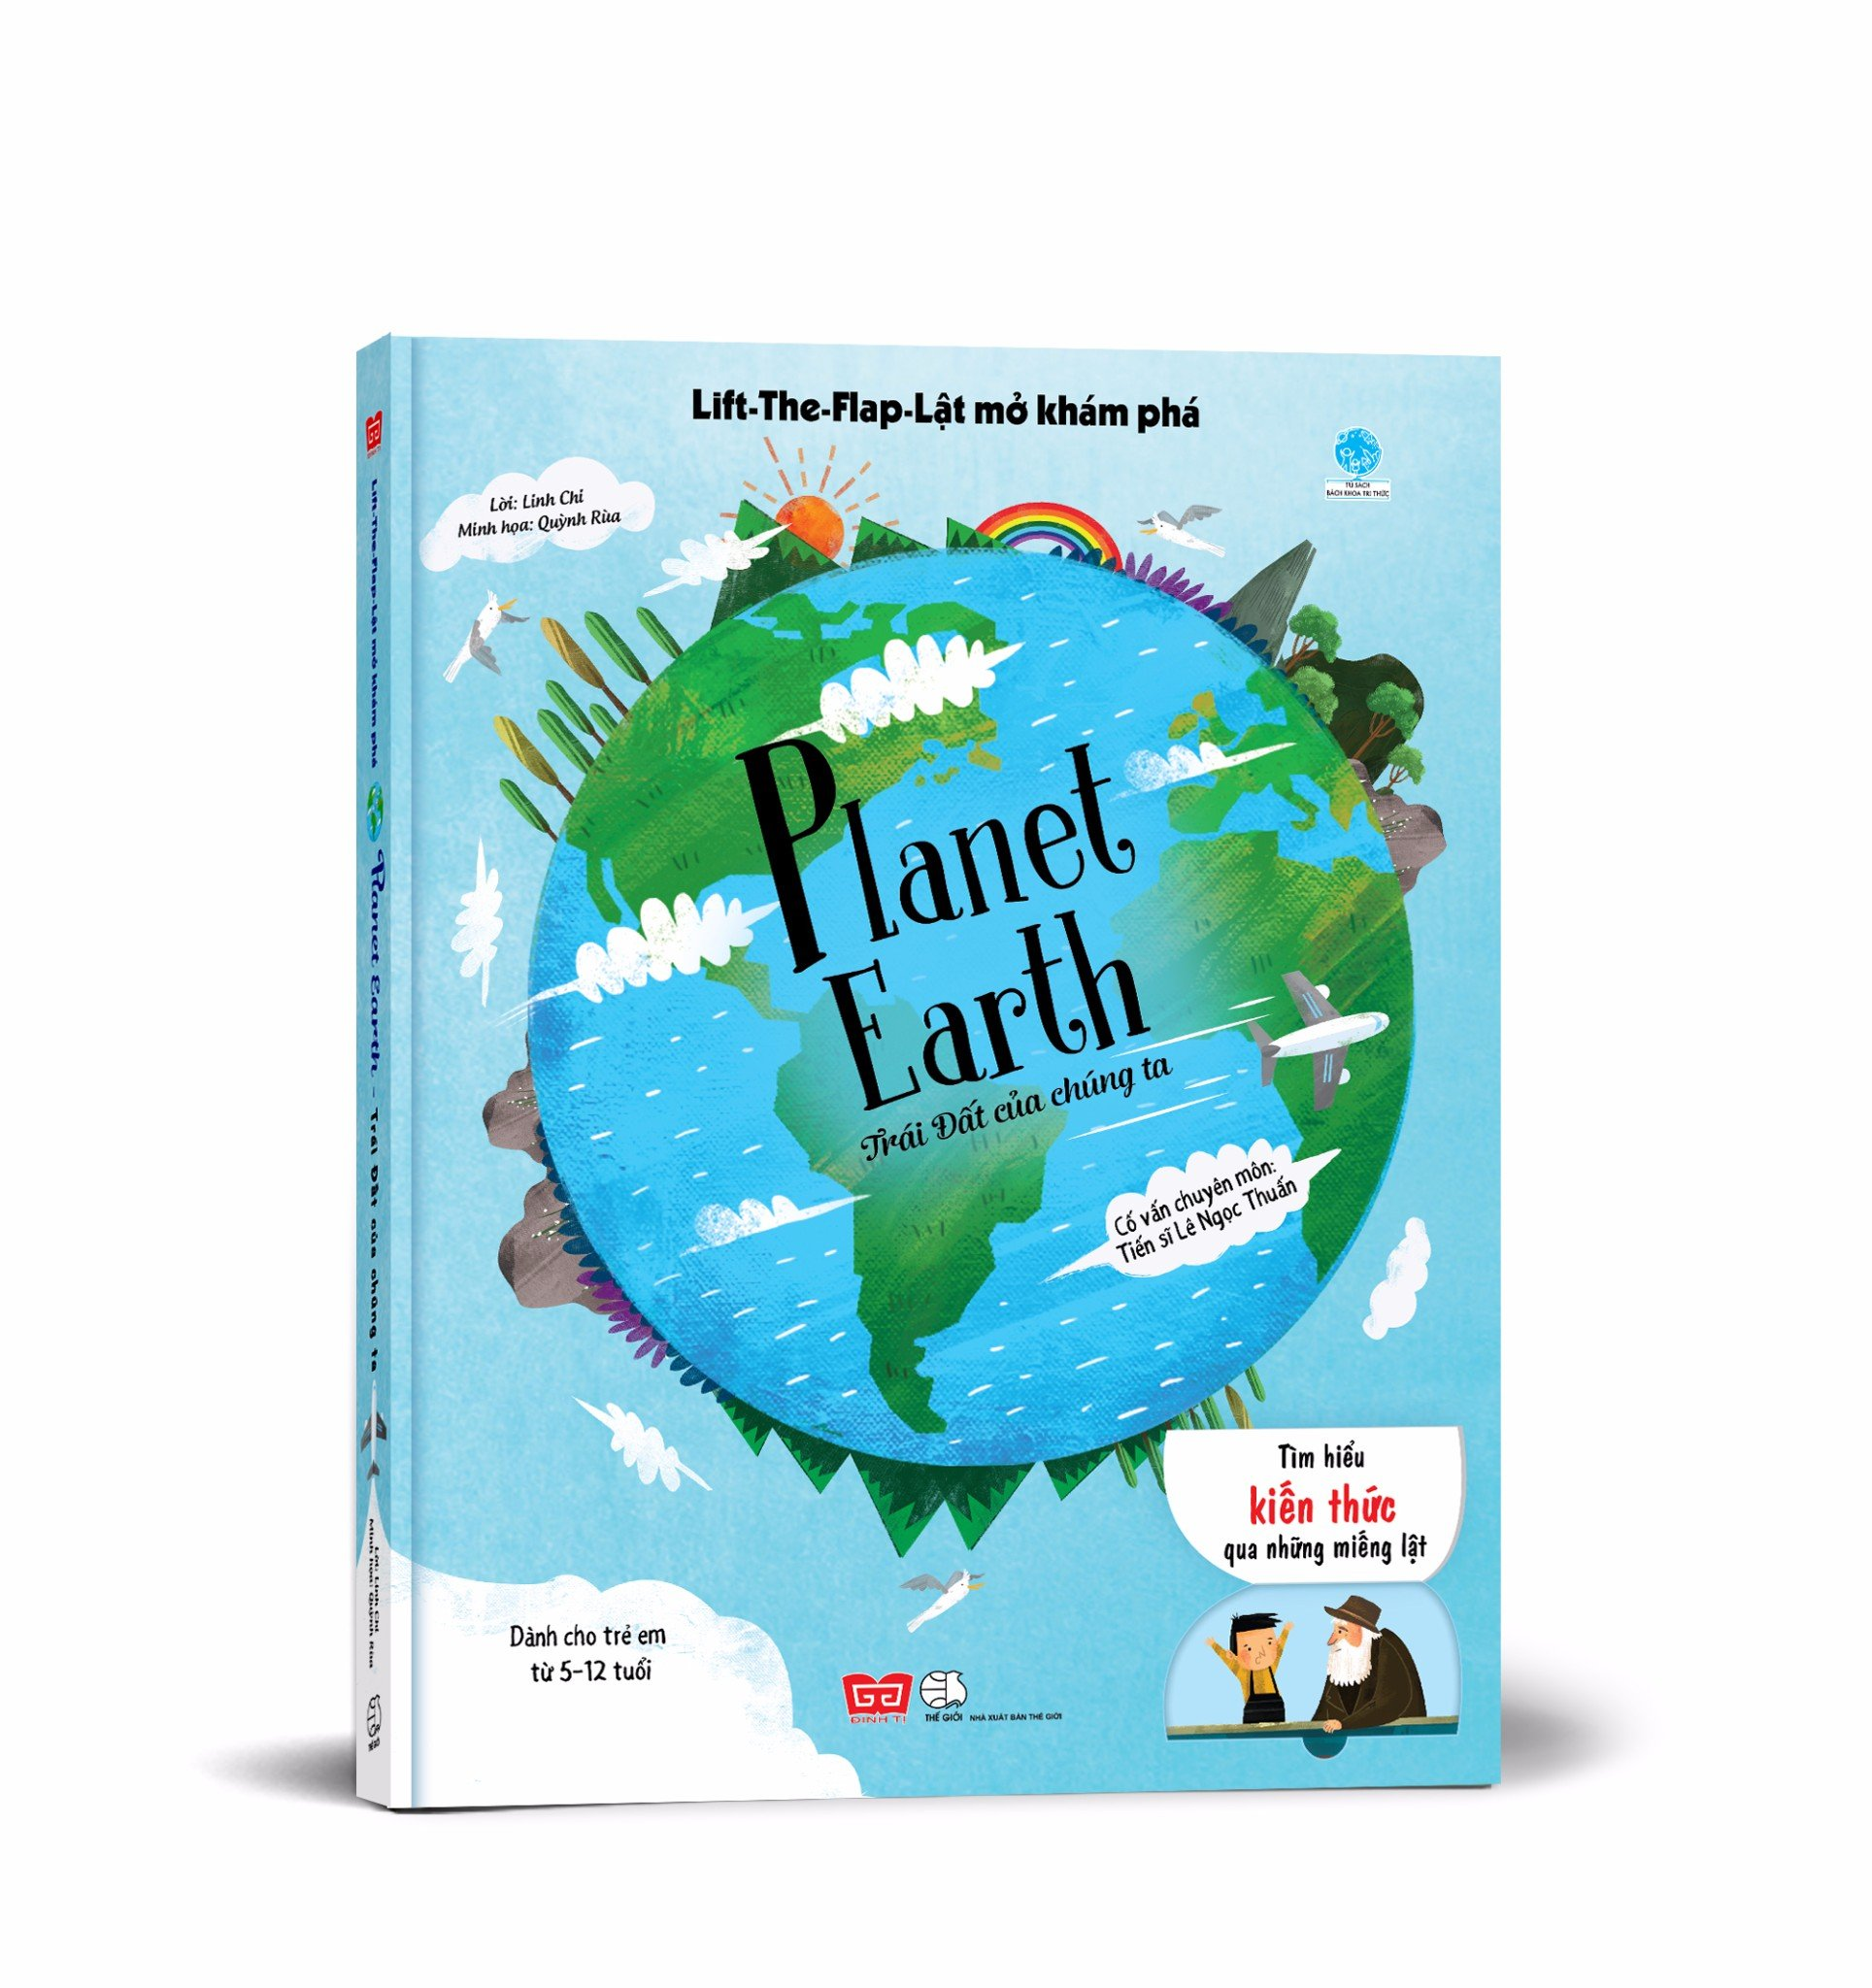 Lift-The-Flap - Lật mở khám phá - Planet Earth - Trái Đất của chúng ta